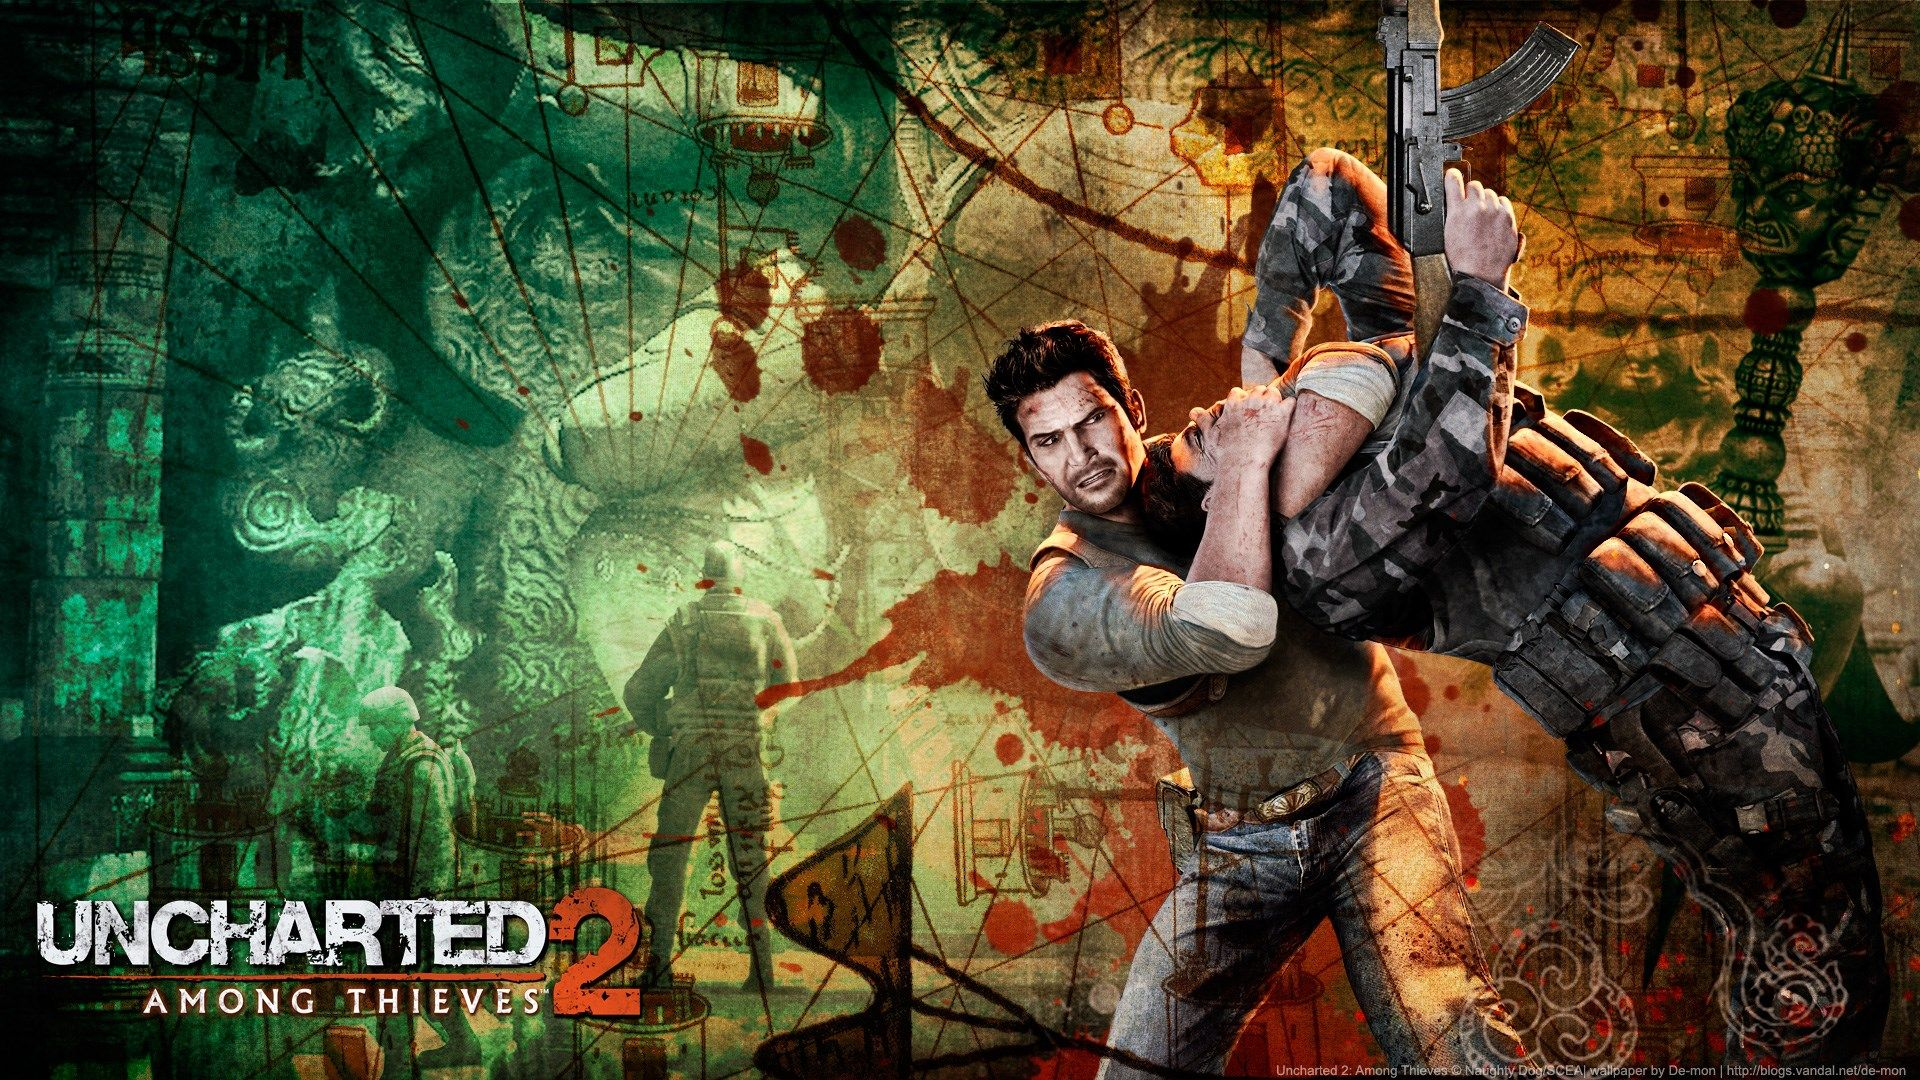 1920x1080 Uncharted 2 Among Thieves Game Wallpaper Uncharted